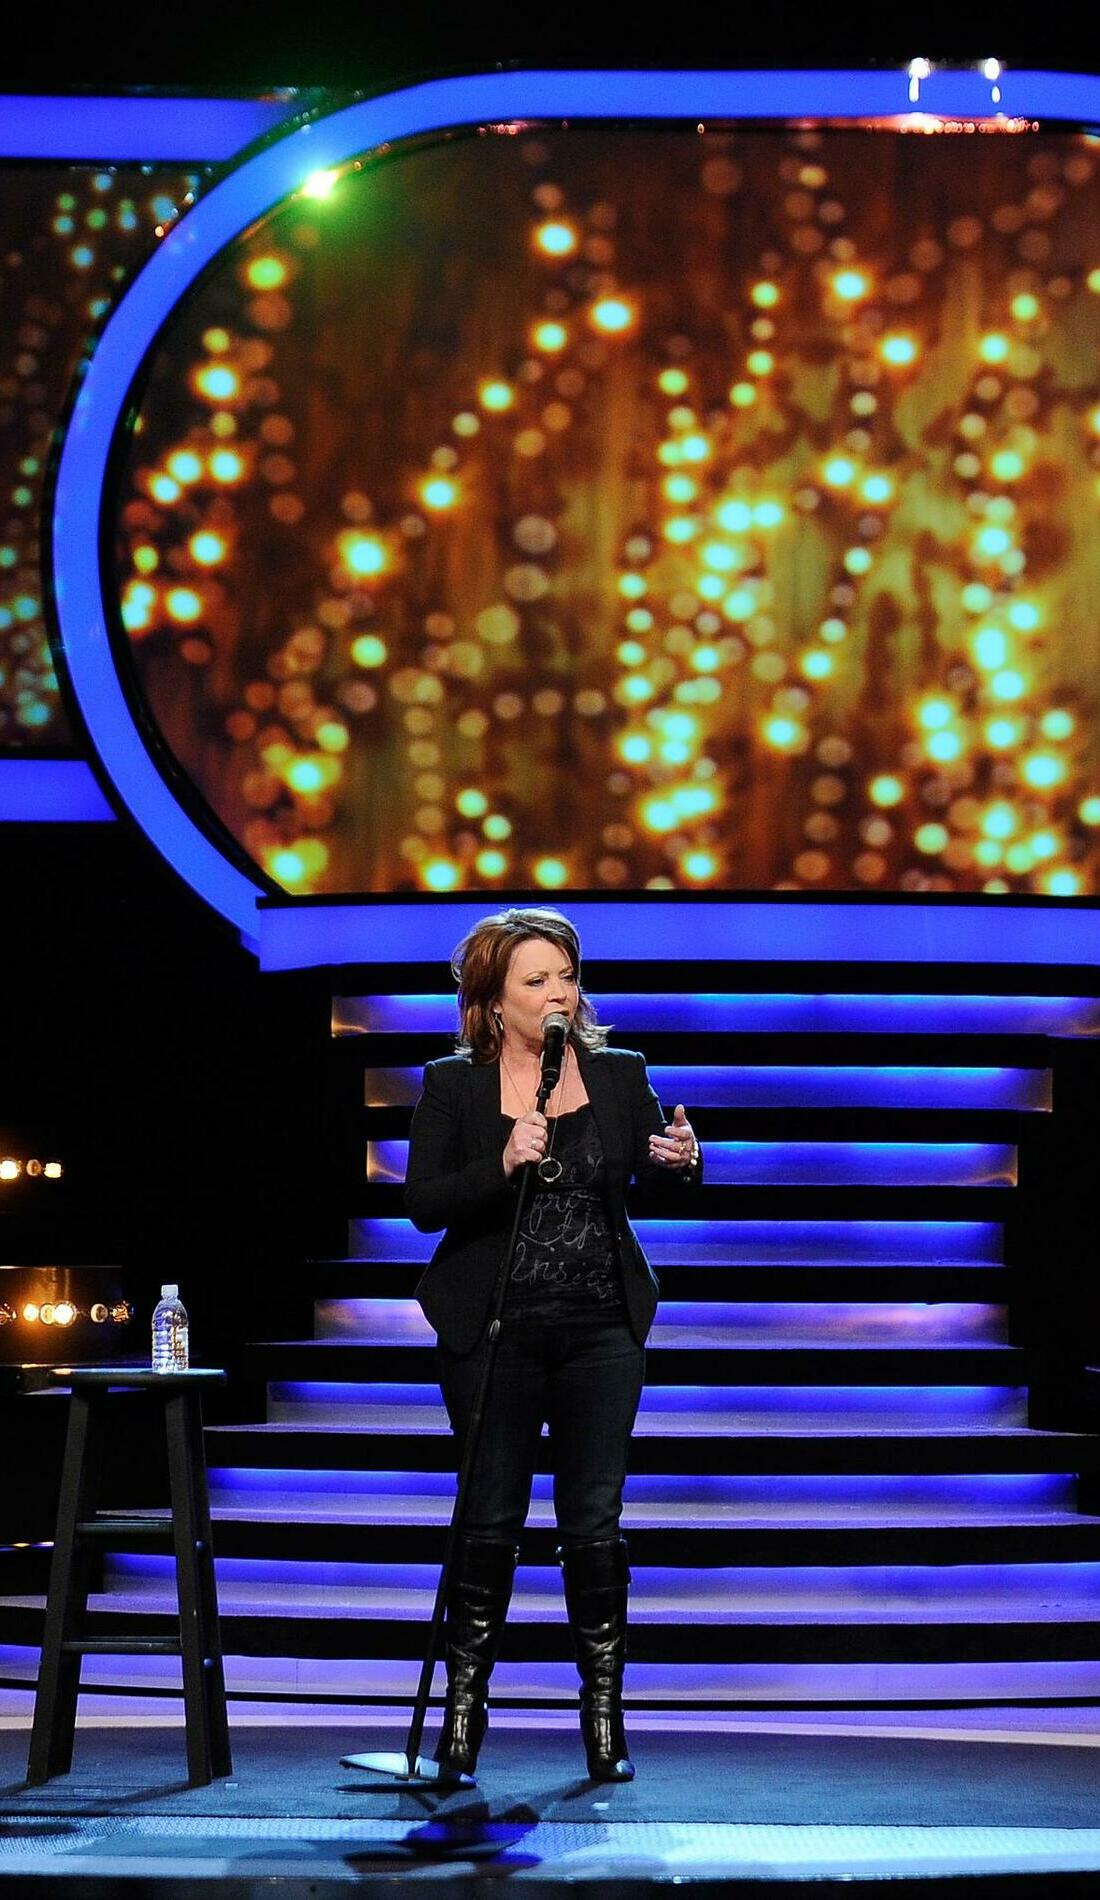 A Kathleen Madigan live event